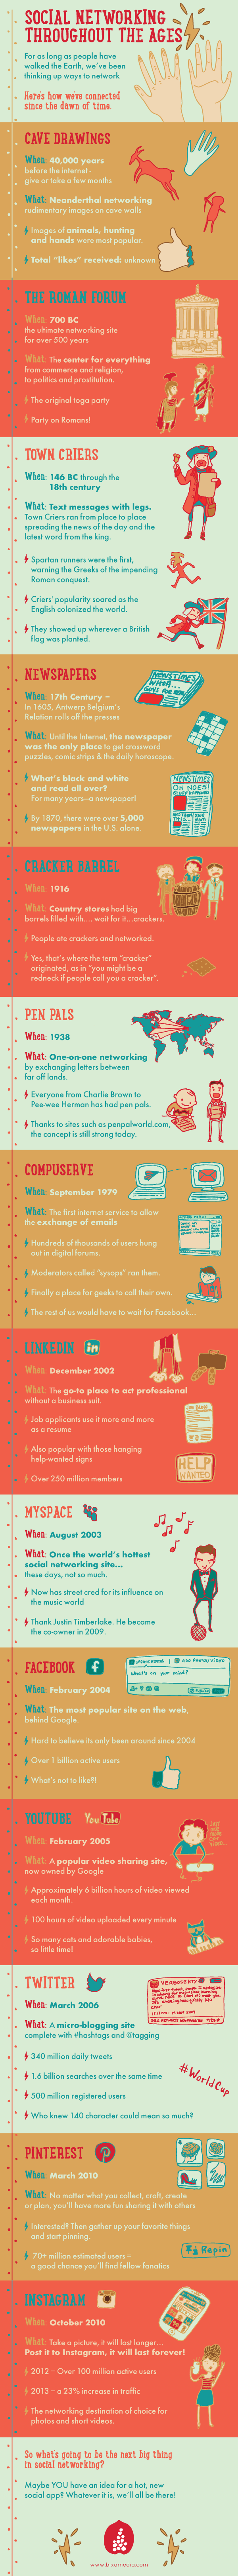 The Timeline of Social Networking - infographic